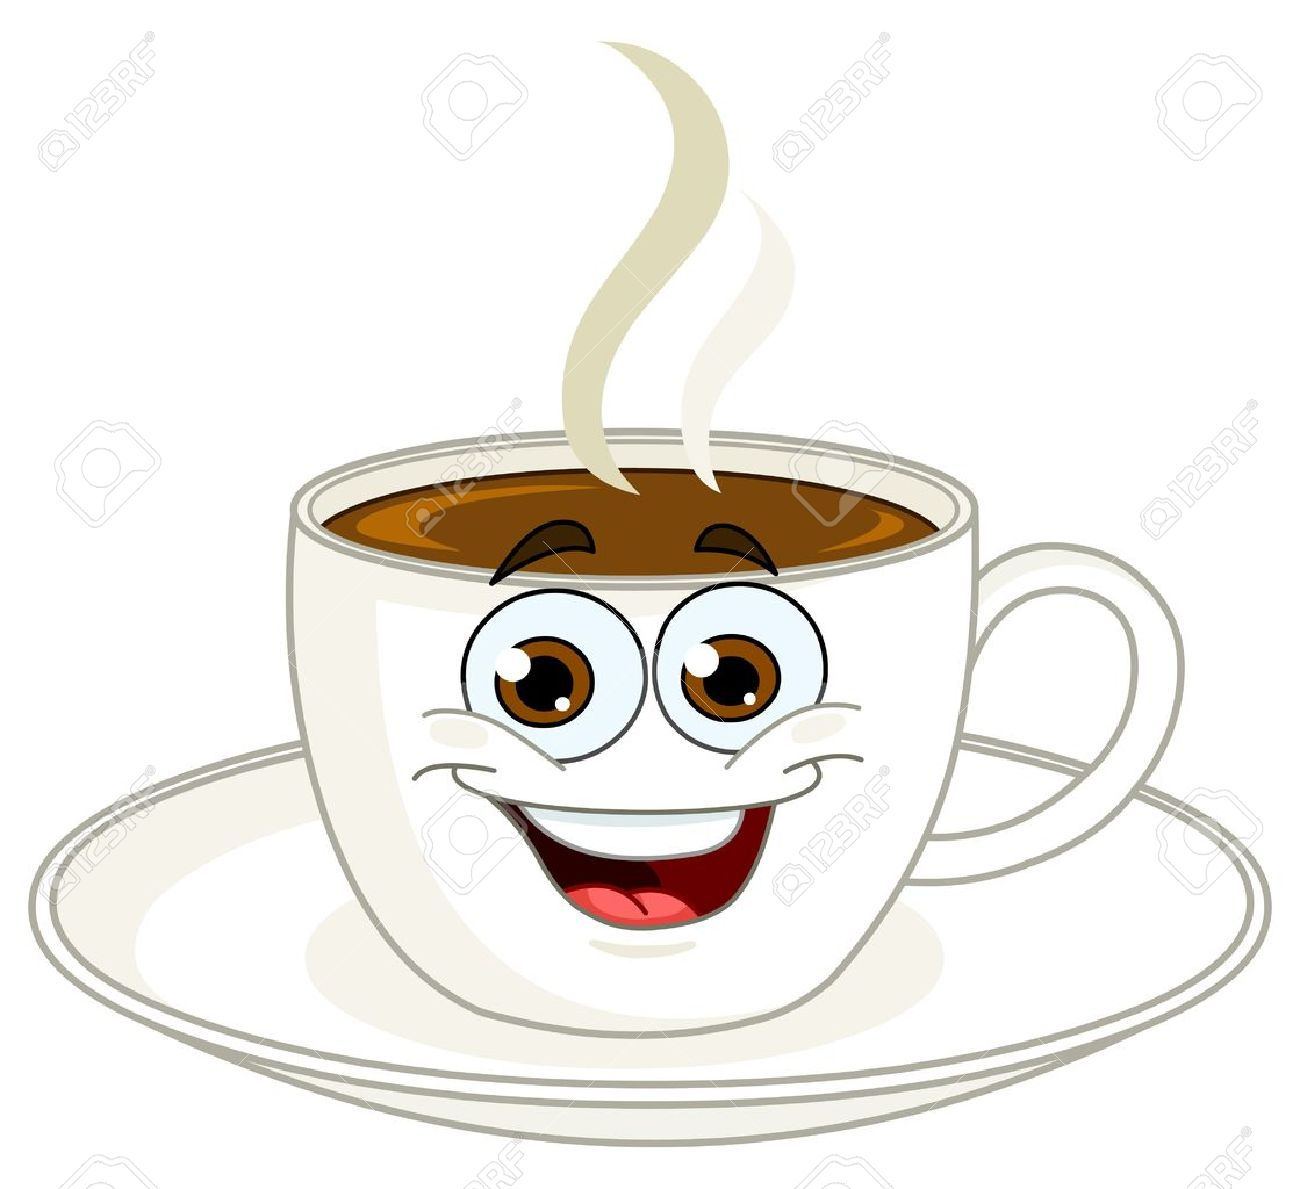 10234504-Coffee-cup-cartoon-Stock-Photo.jpg